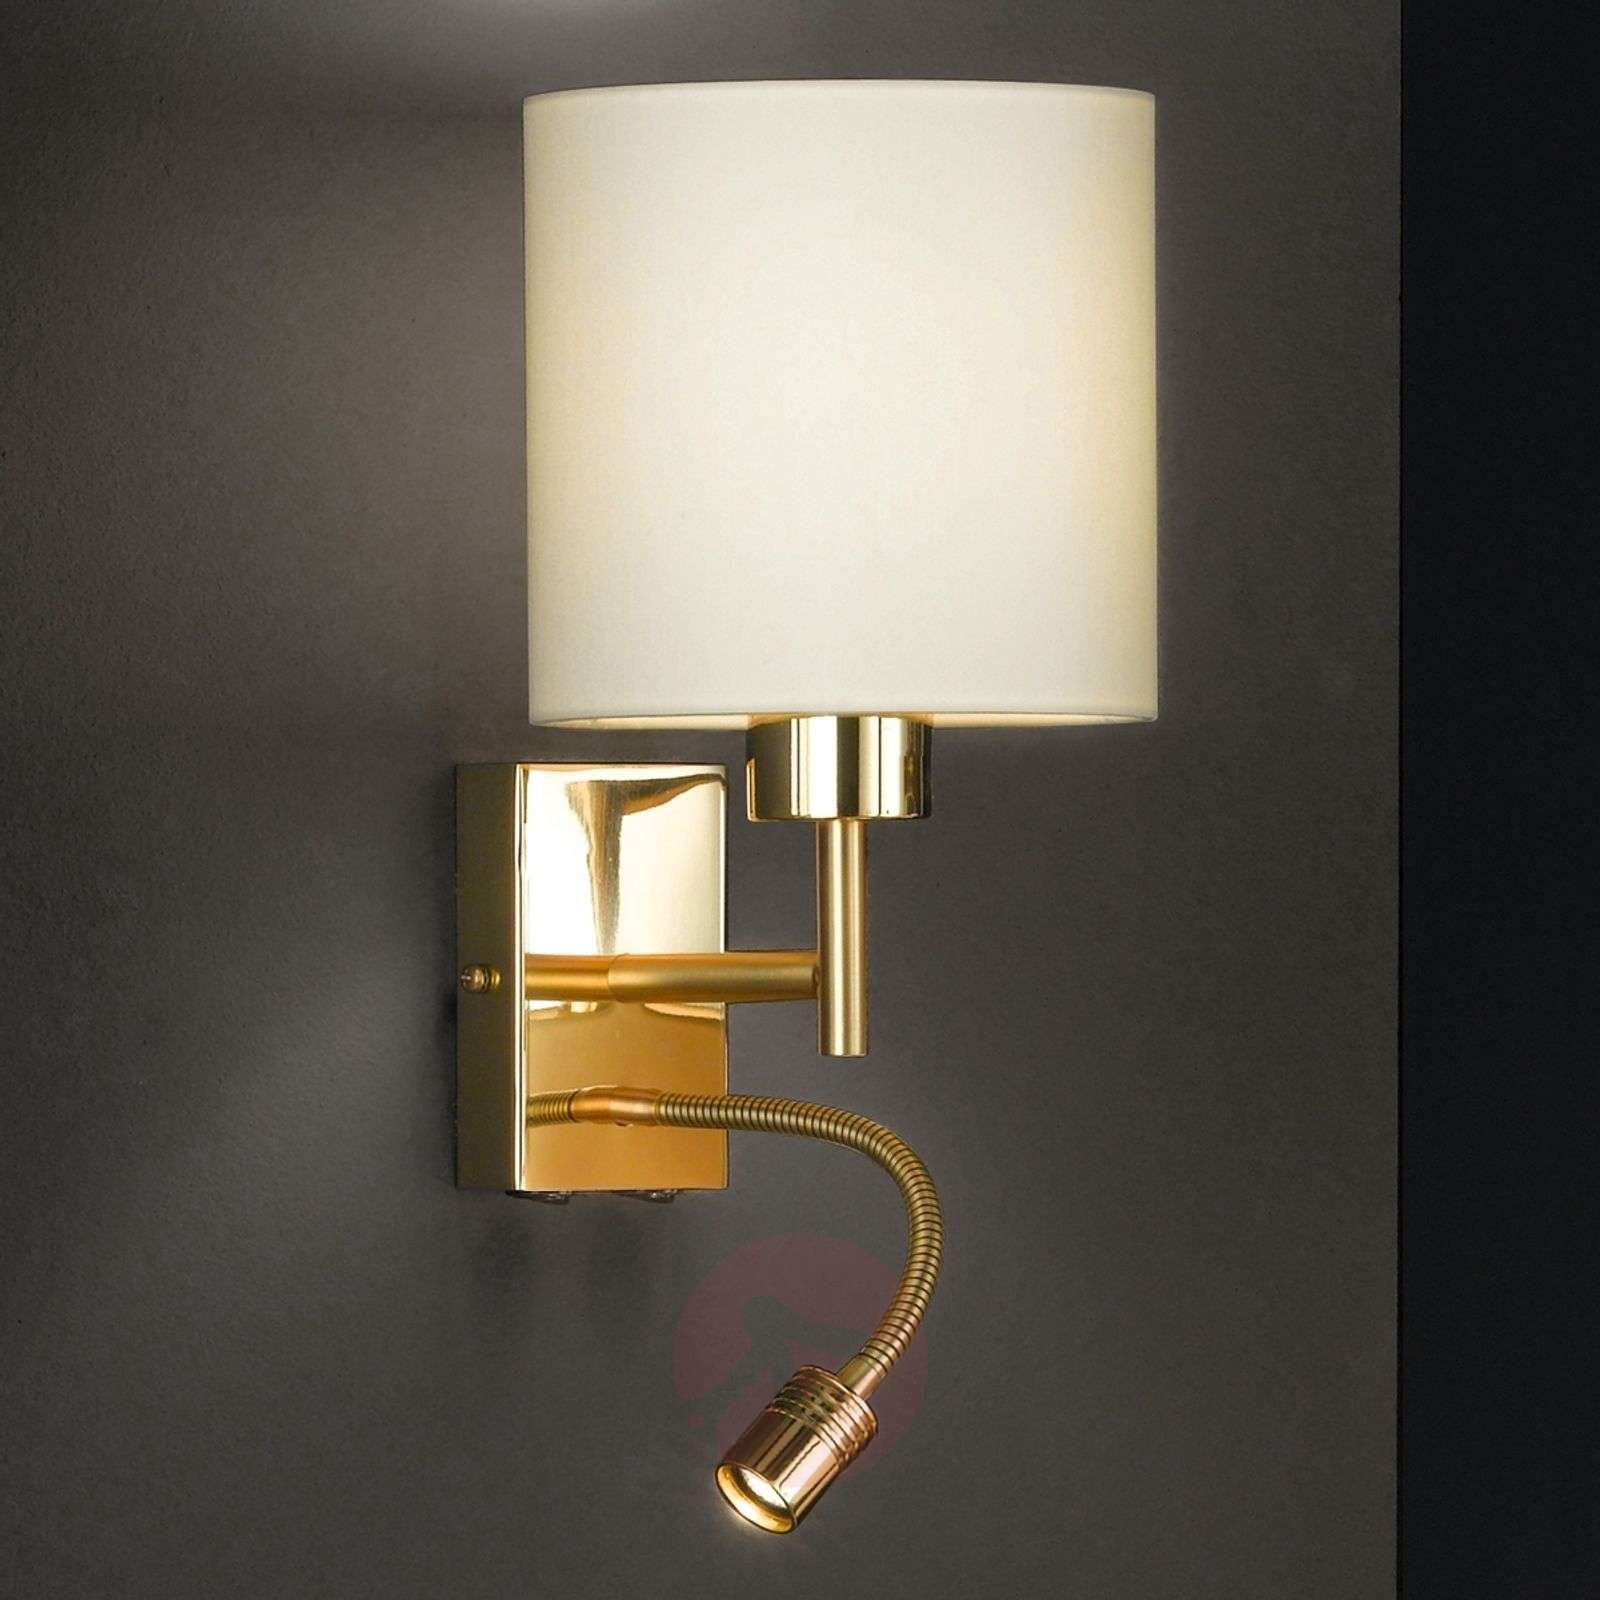 Wall lamp Mainz with LED flexible arm-4580378-09